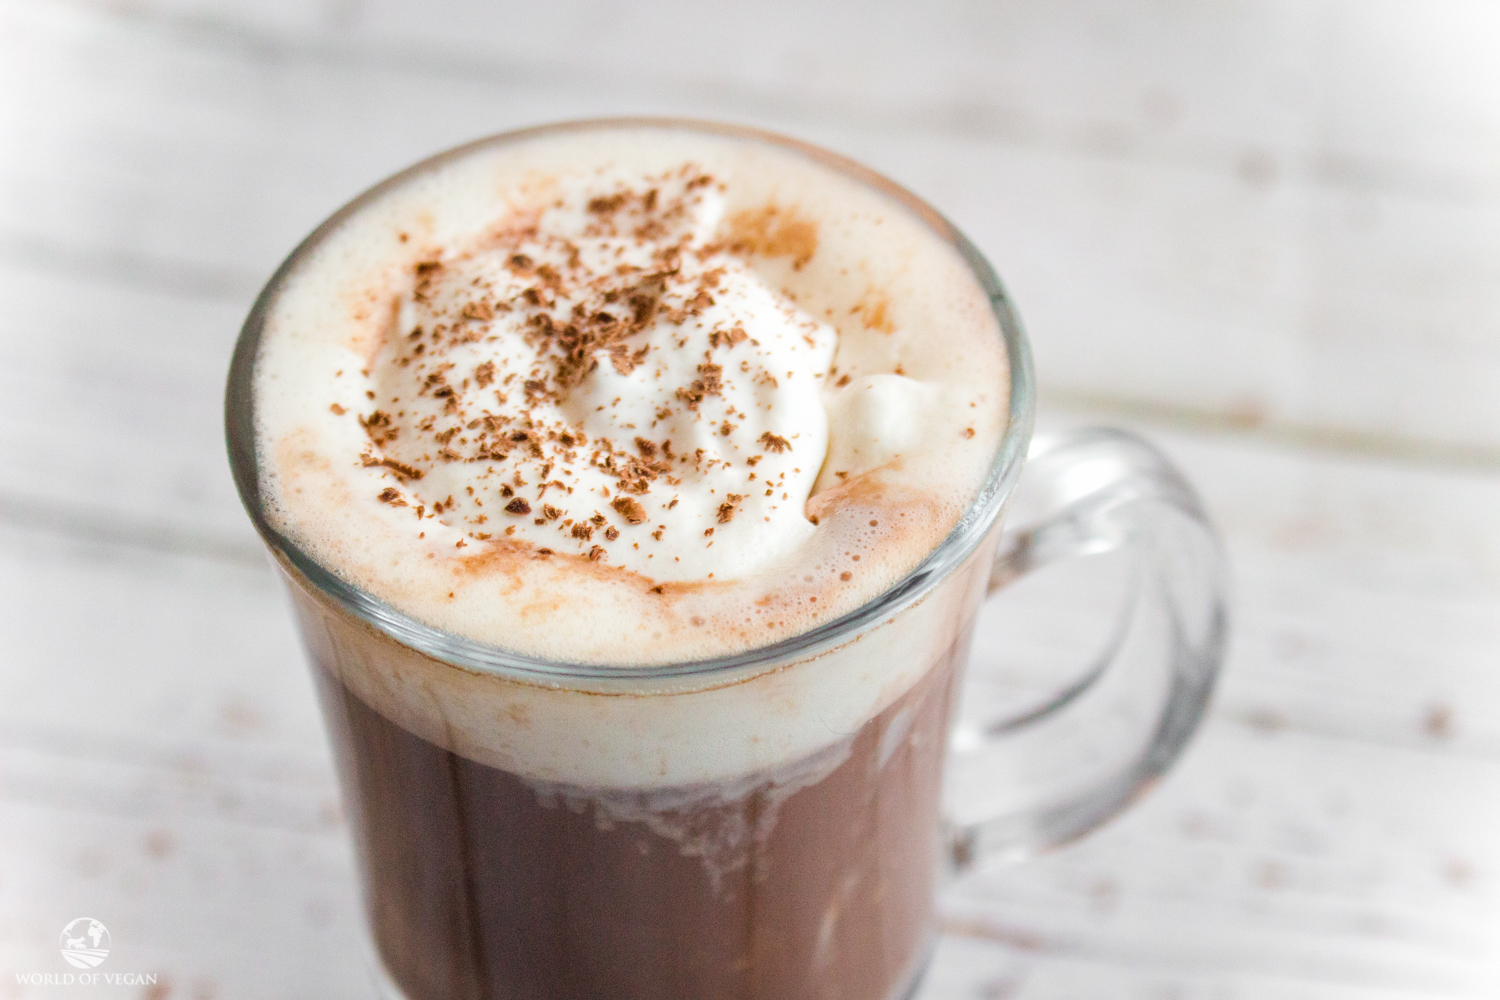 Vegan Fall Desserts: Peppermint Mocha